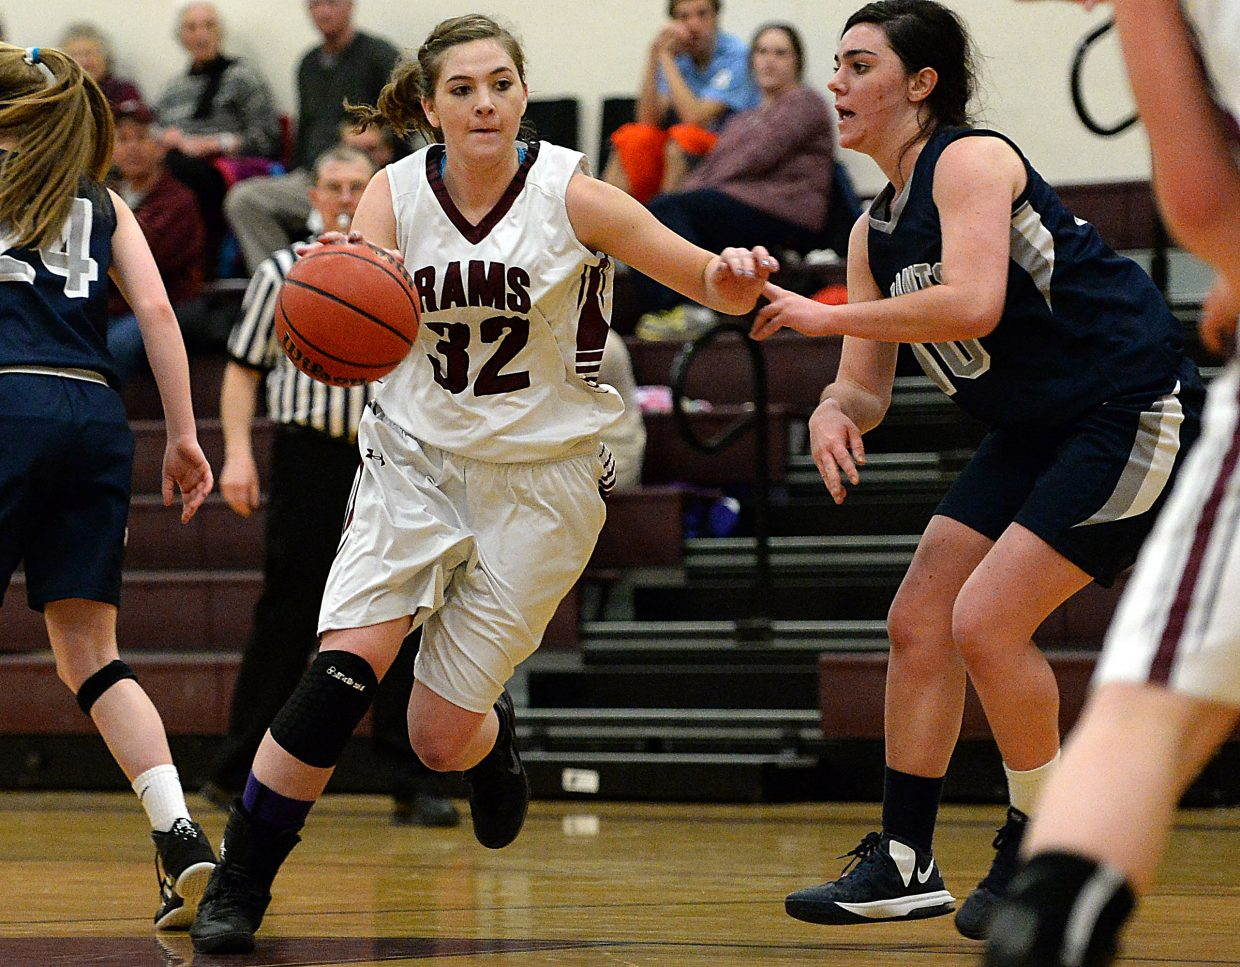 Jacey Schlegel drives through the defense Wednesday against Vail Christian. She scored 24 to help the Rams to a big win.